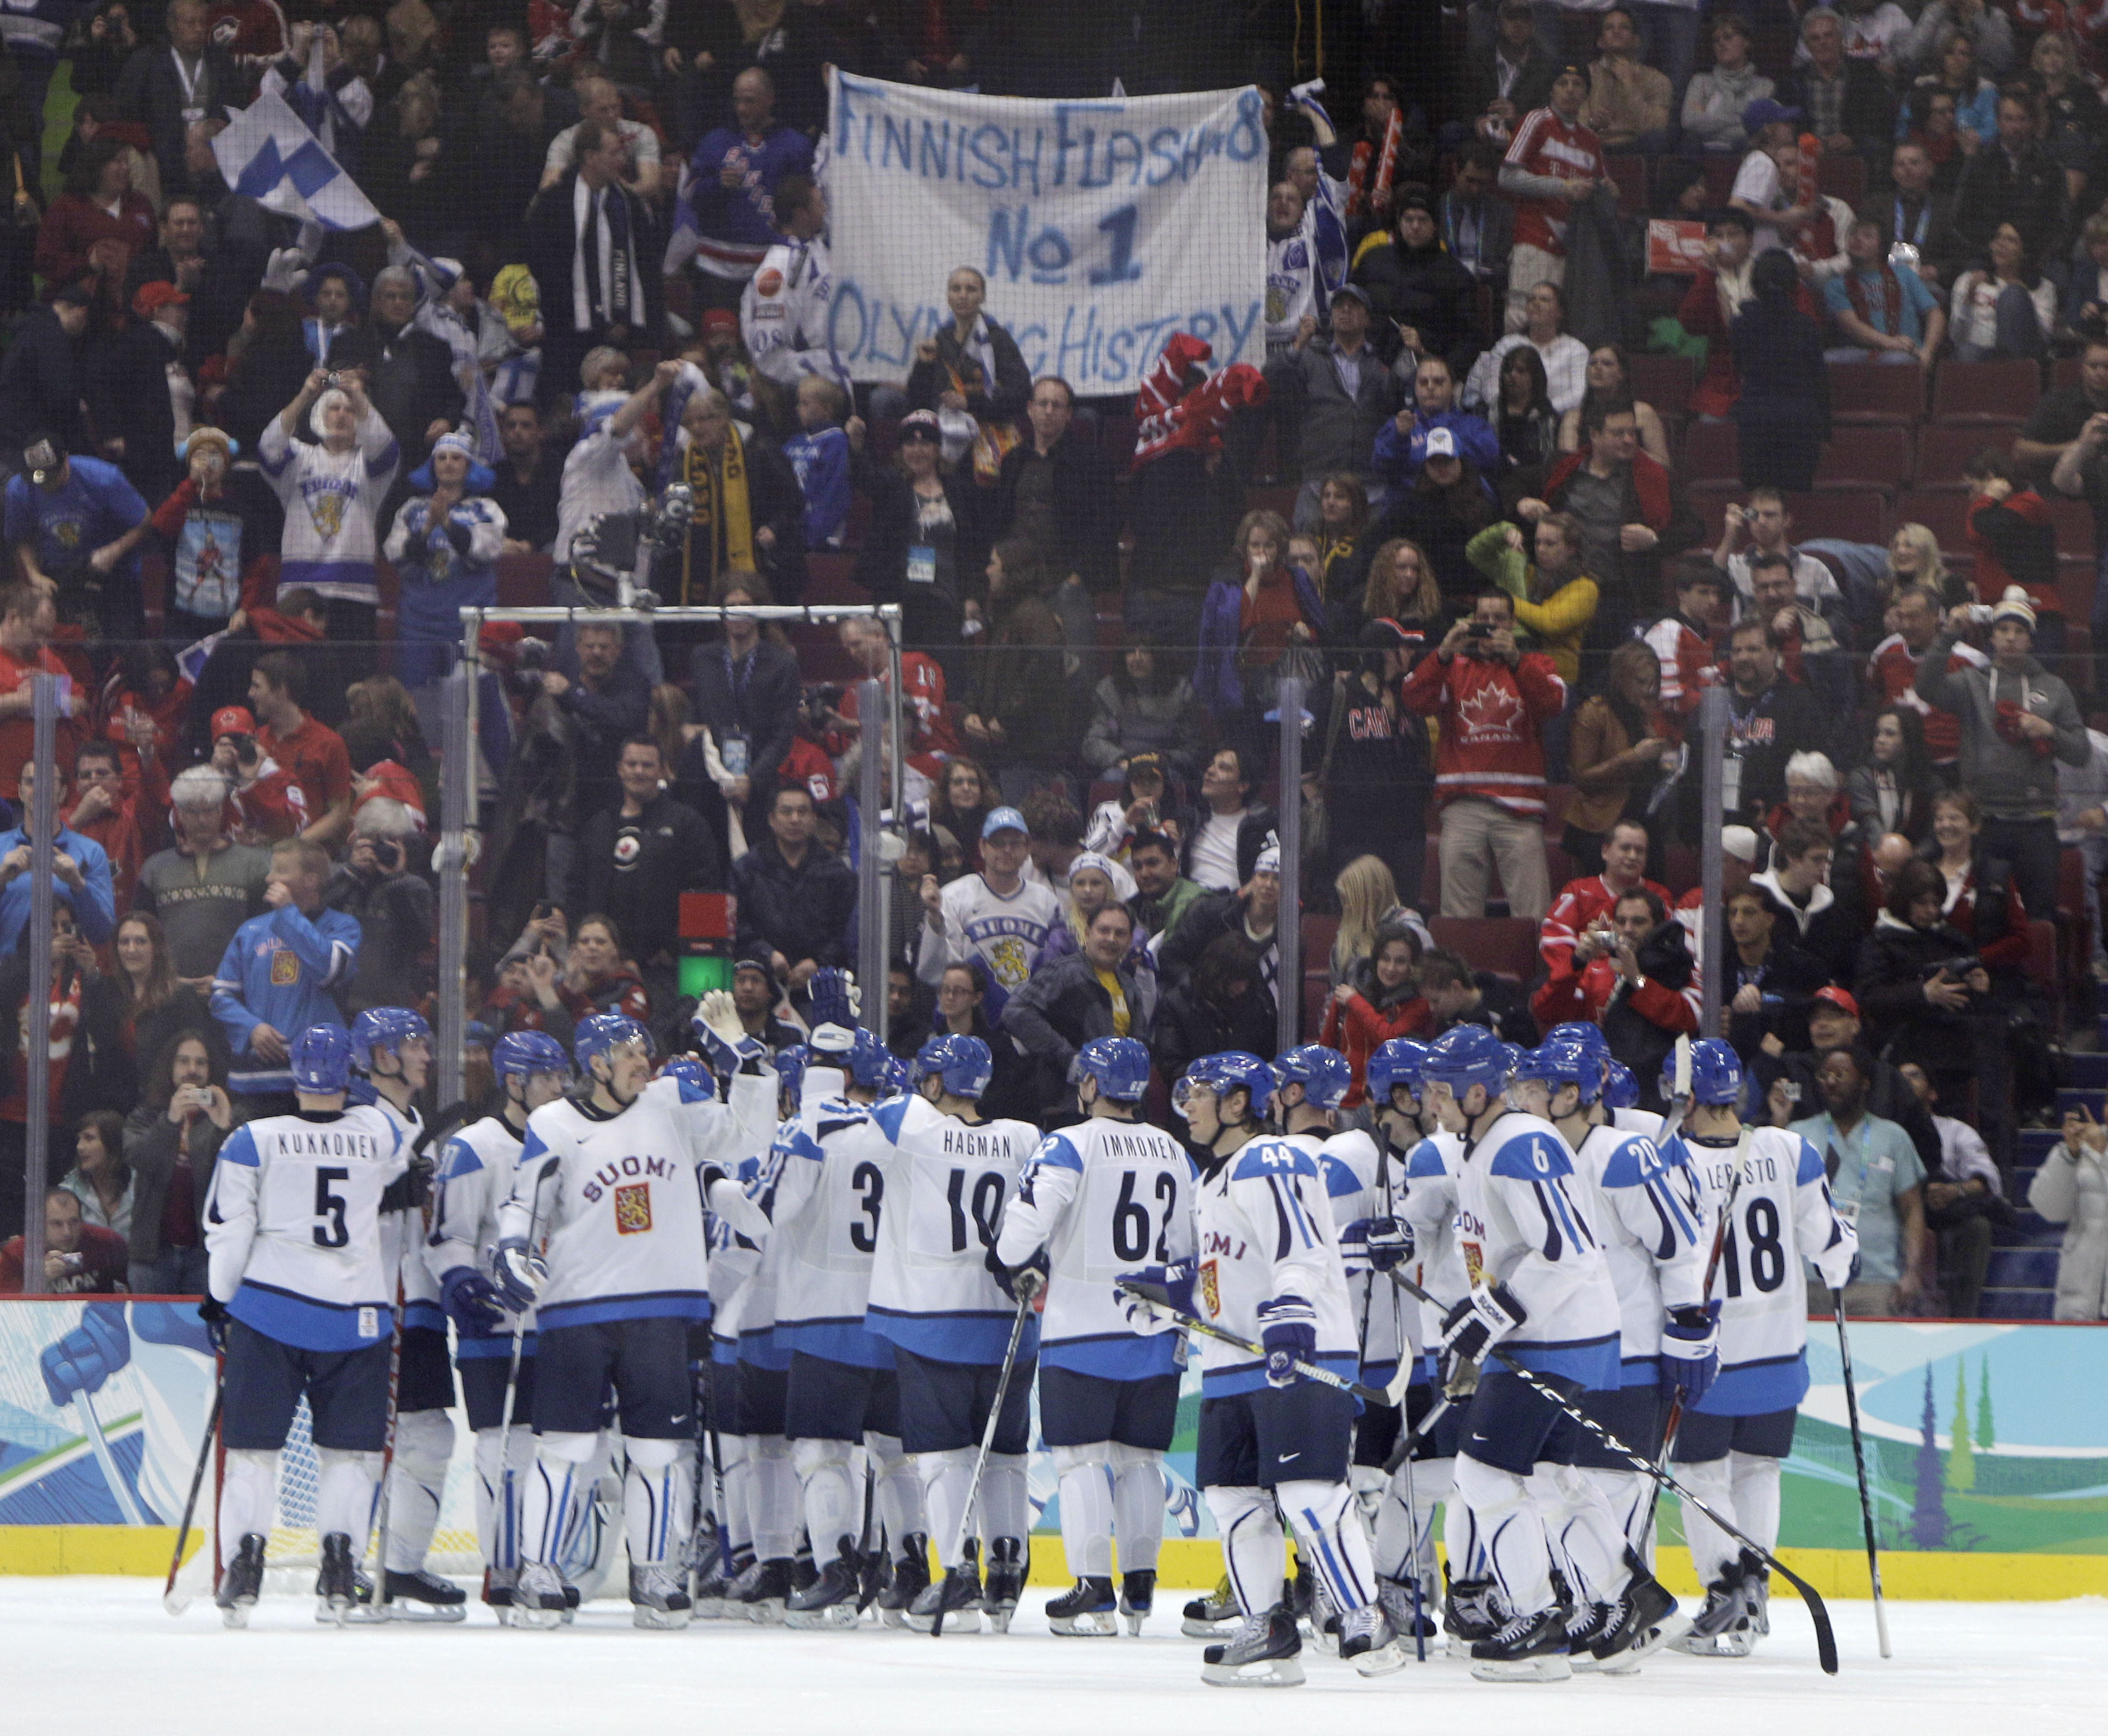 20100220_080450_vancouver_olympics_ice_h_r6003.jpg